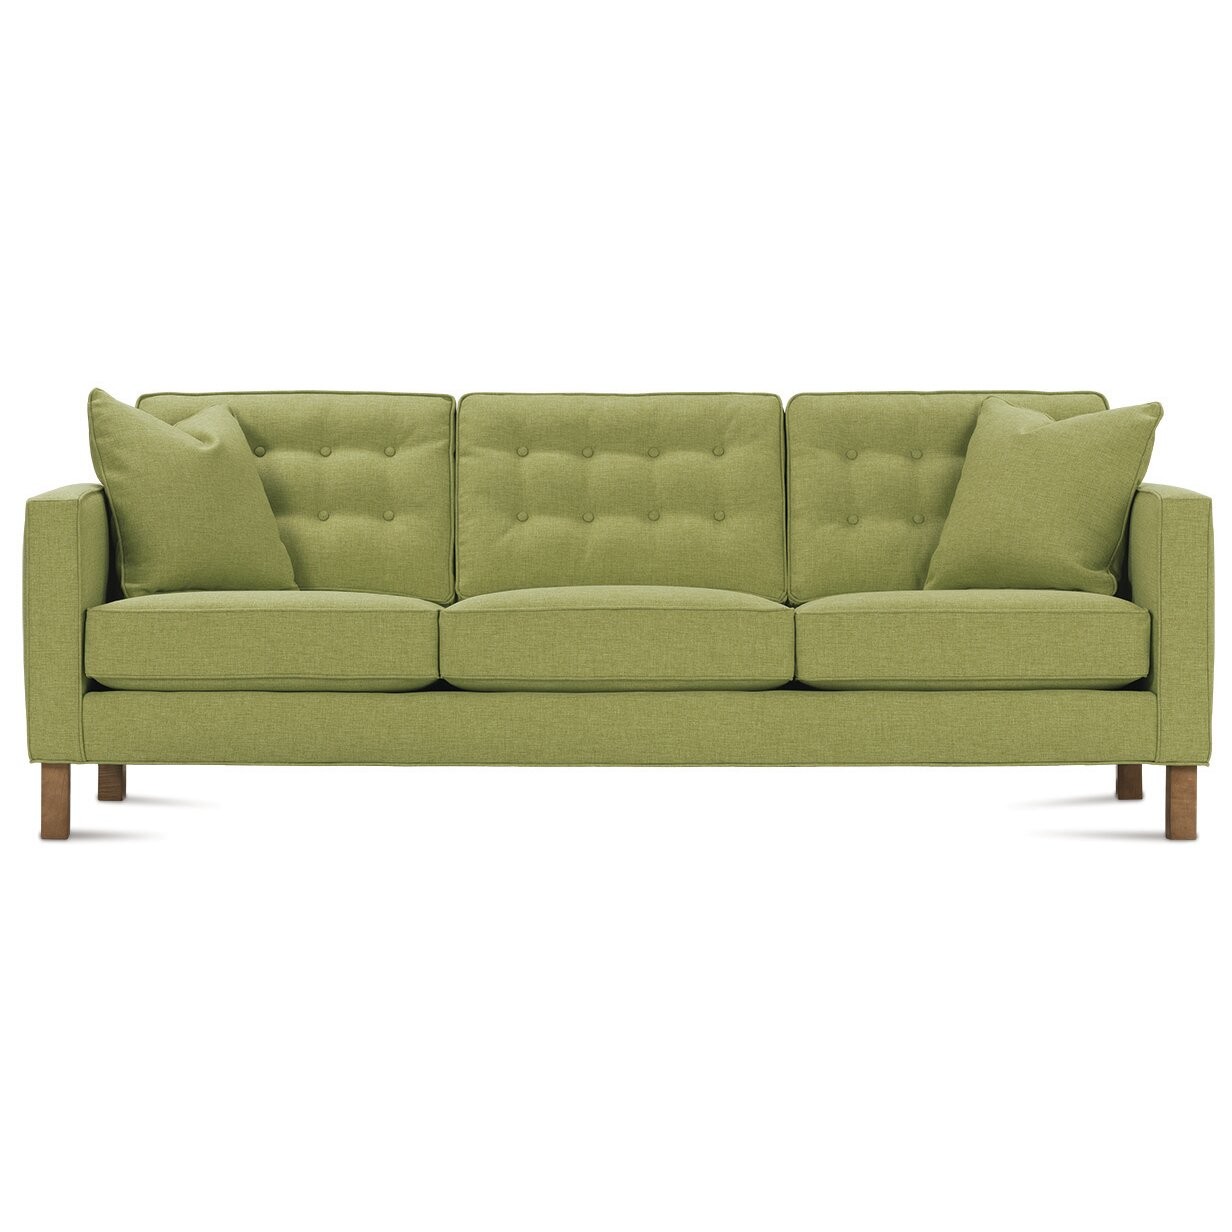 Rowe Furniture Abbott Sofa & Reviews